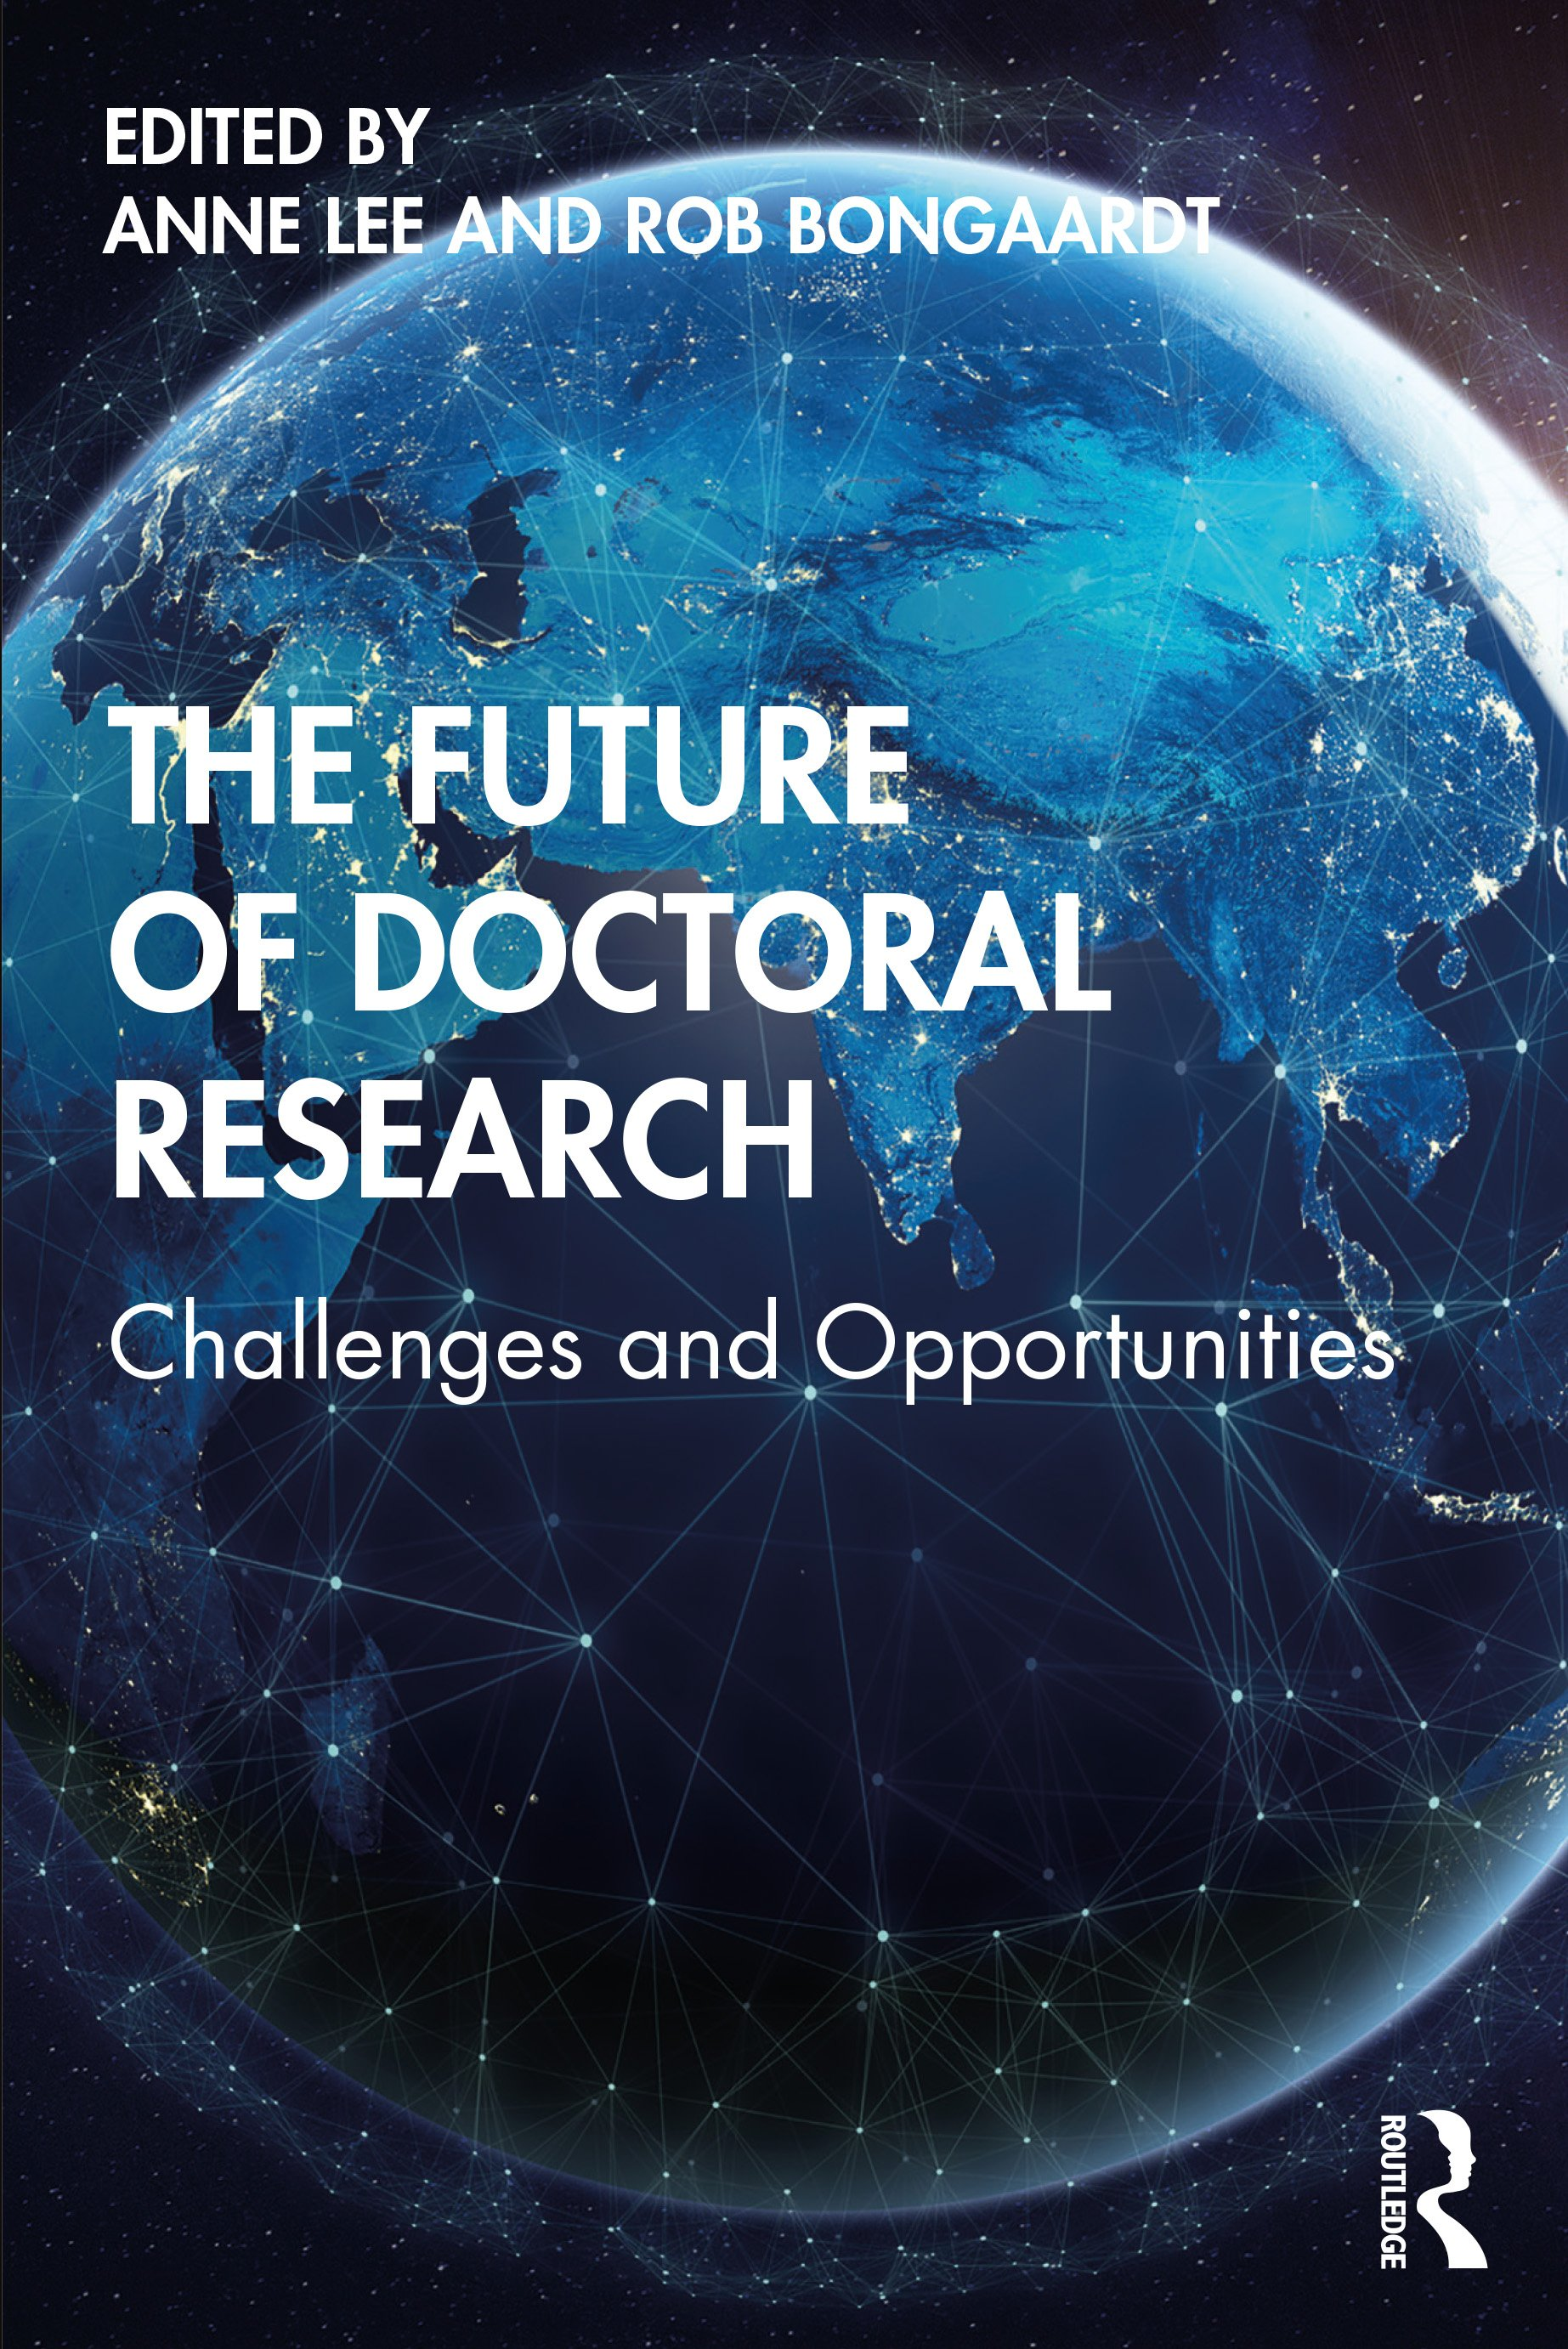 The Future of Doctoral Research